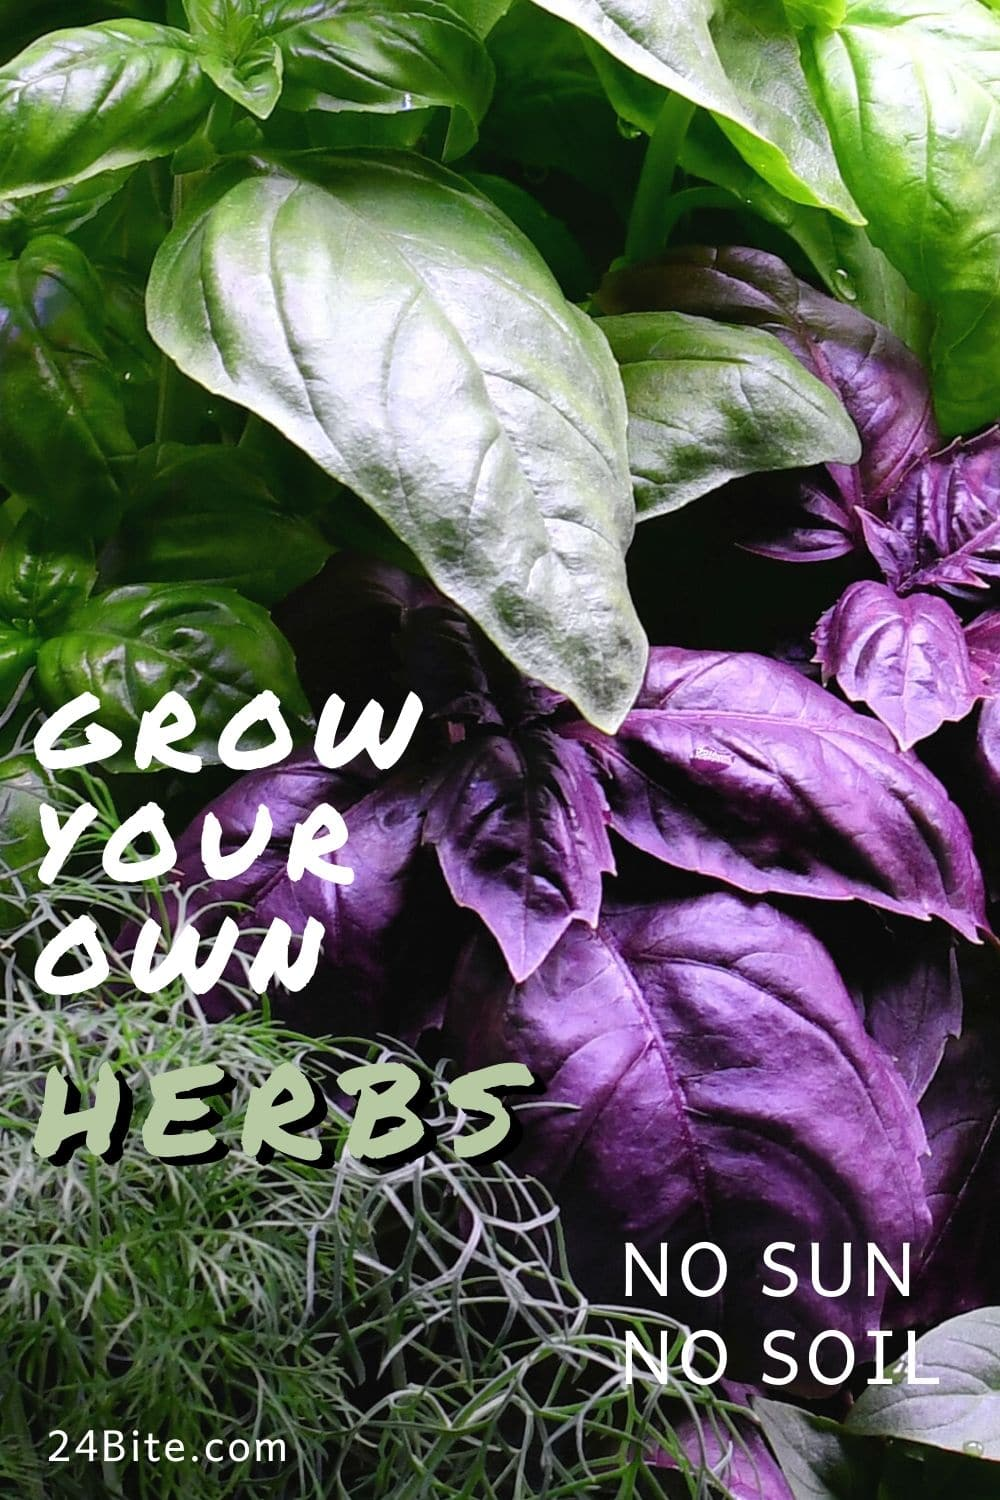 24Bite: Growing Your Own Herbs for Food Photography with Homemade Meat Sauce